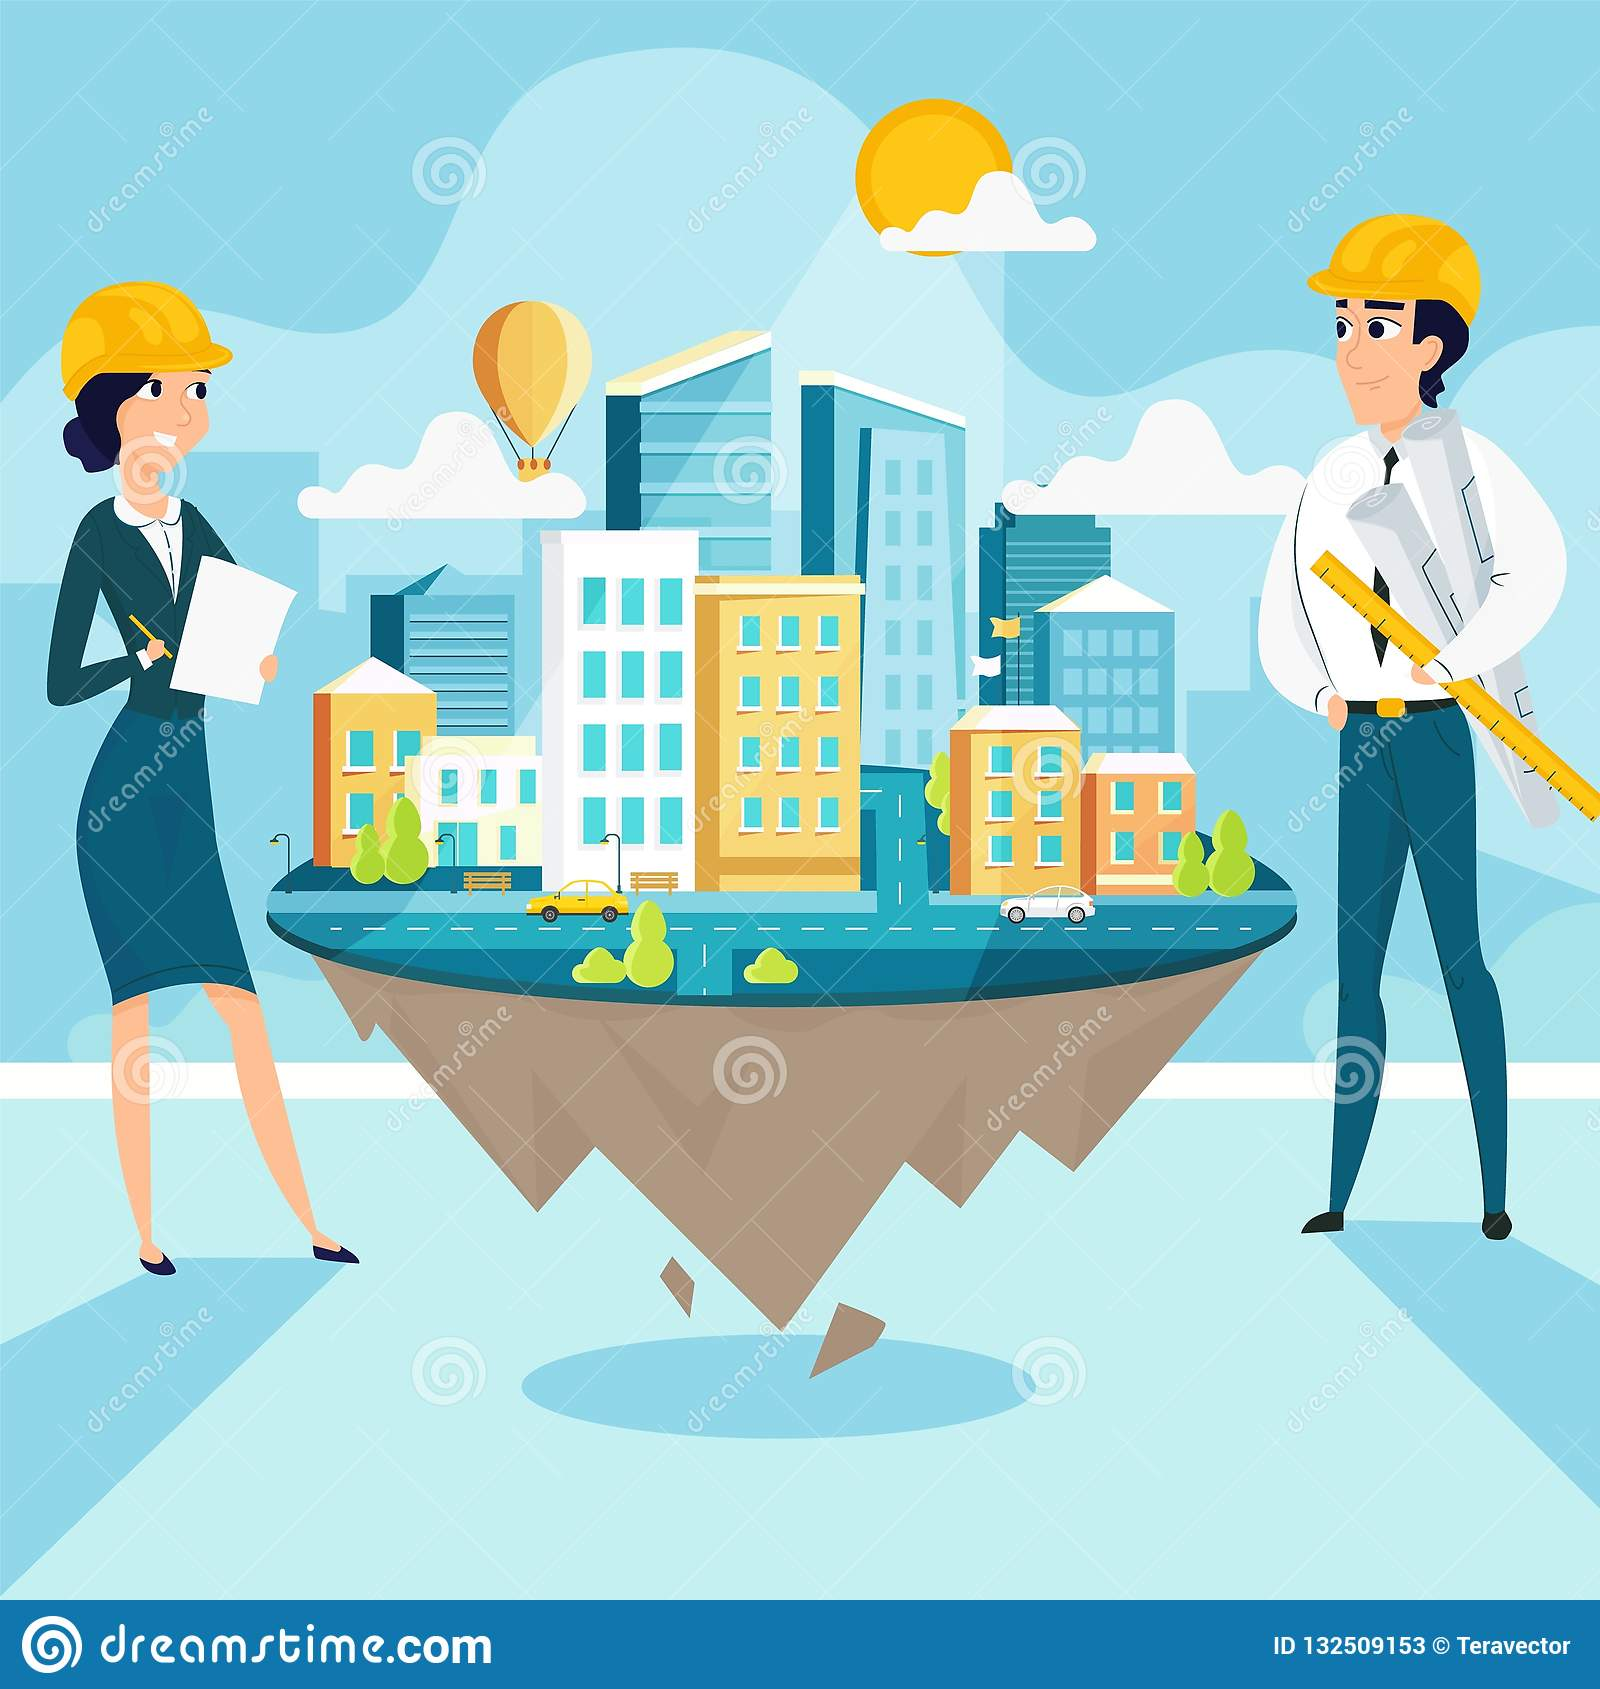 Group Of Architects With City Architecture Layout Stock Vector